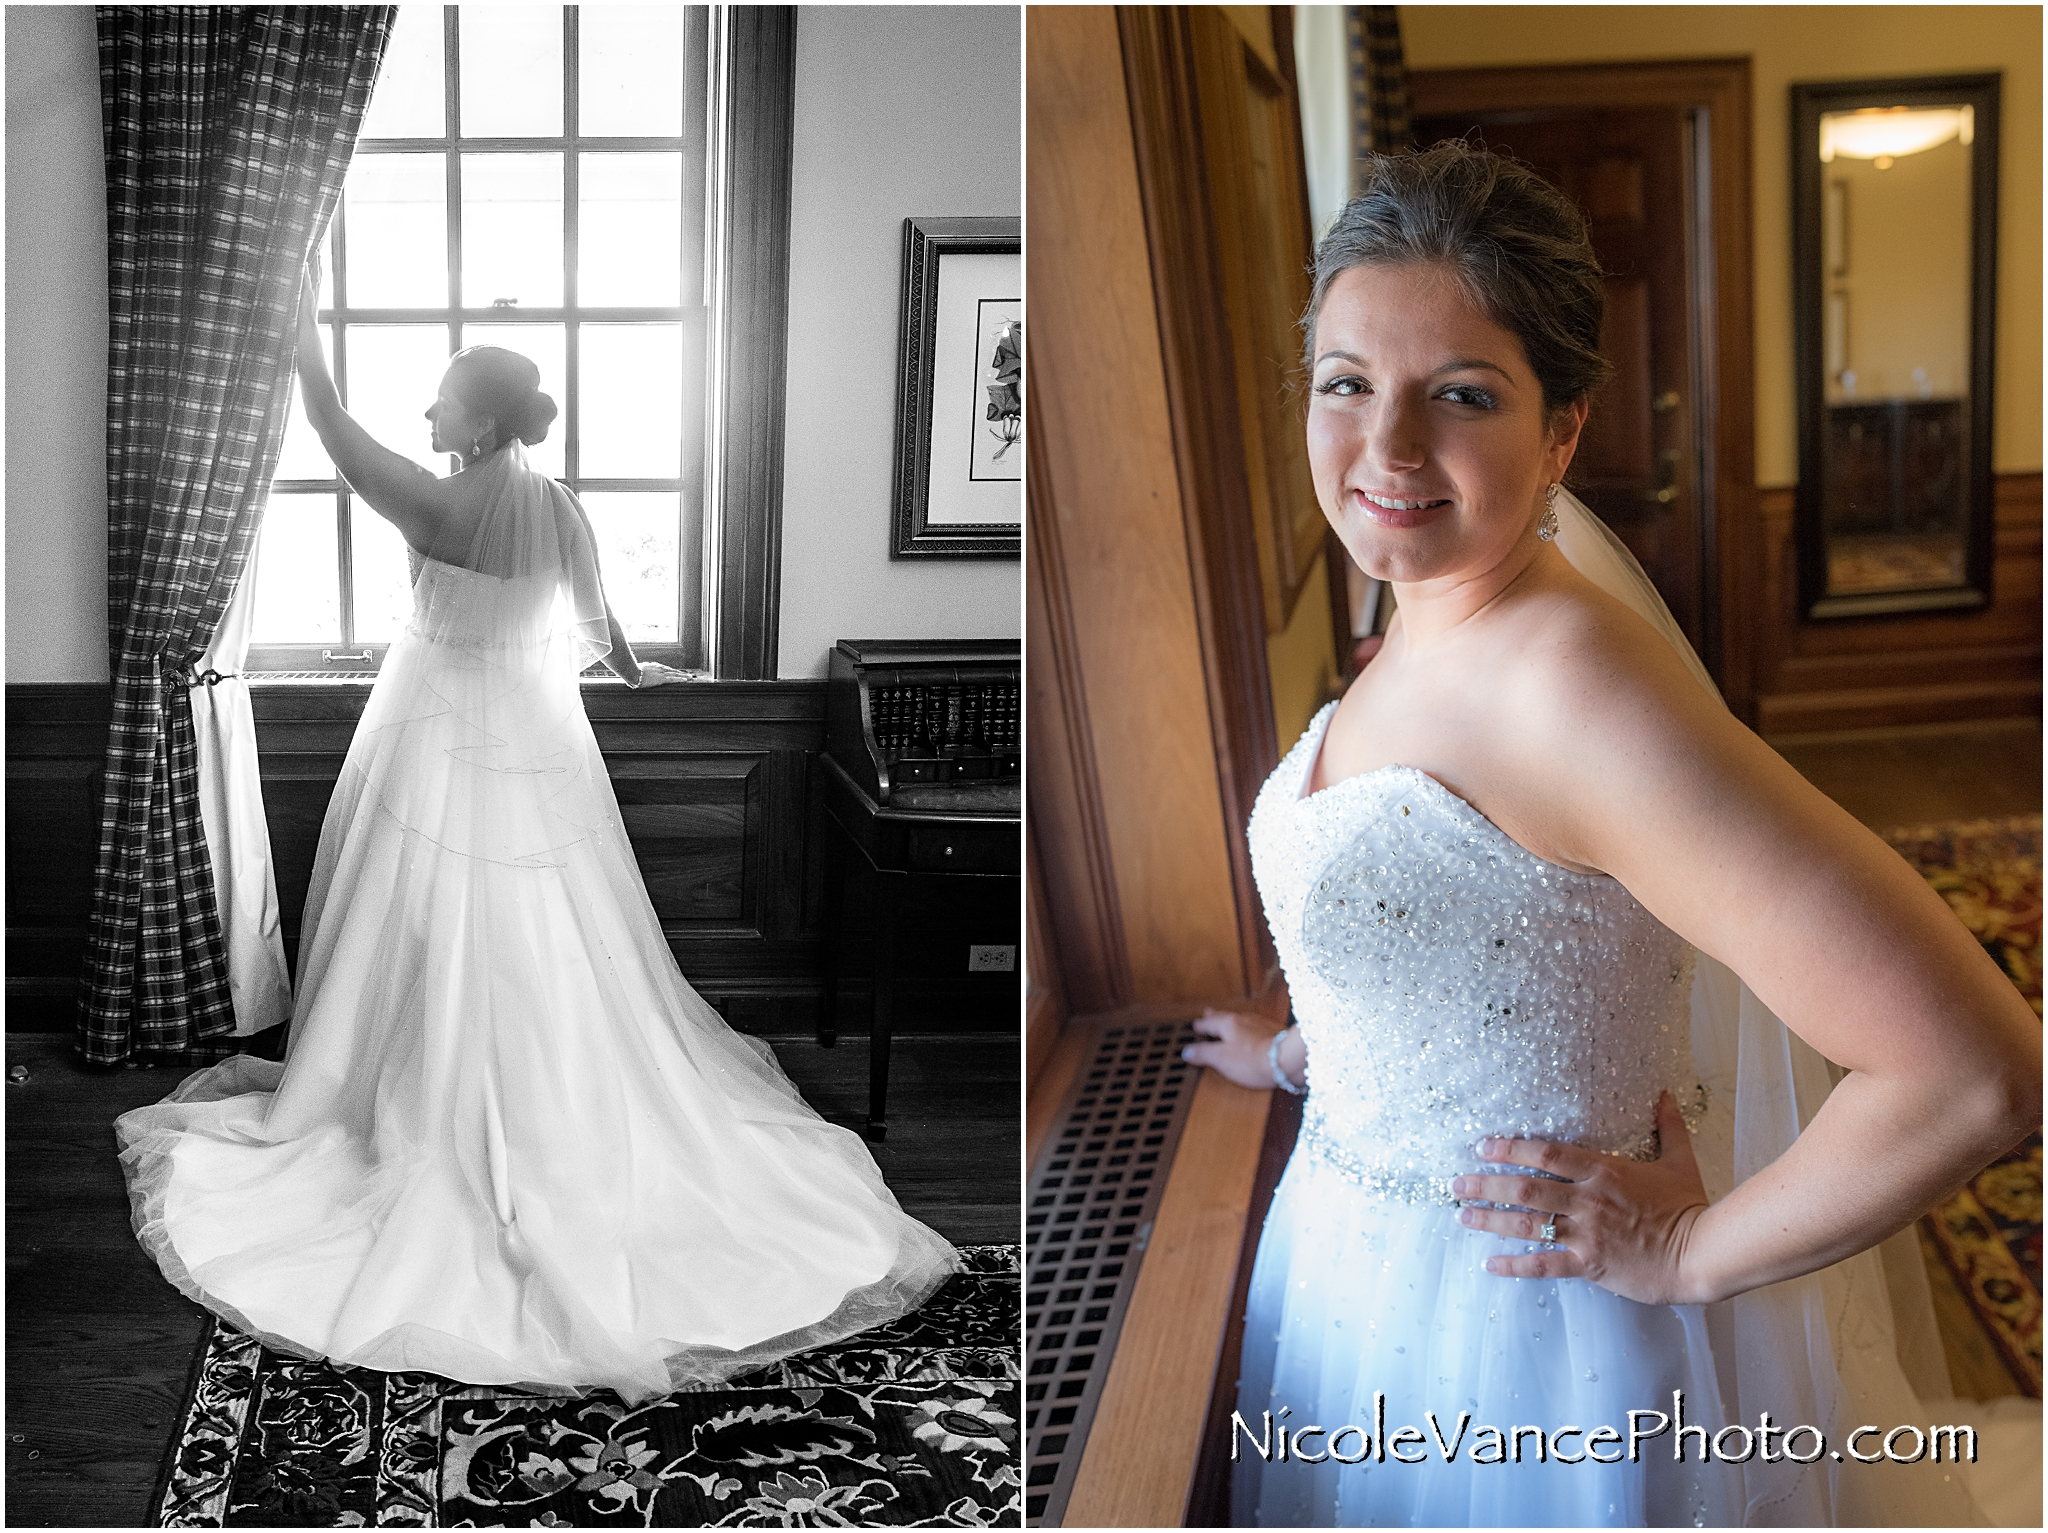 Bridal portraits in the bridal suite at Virginia Crossings.